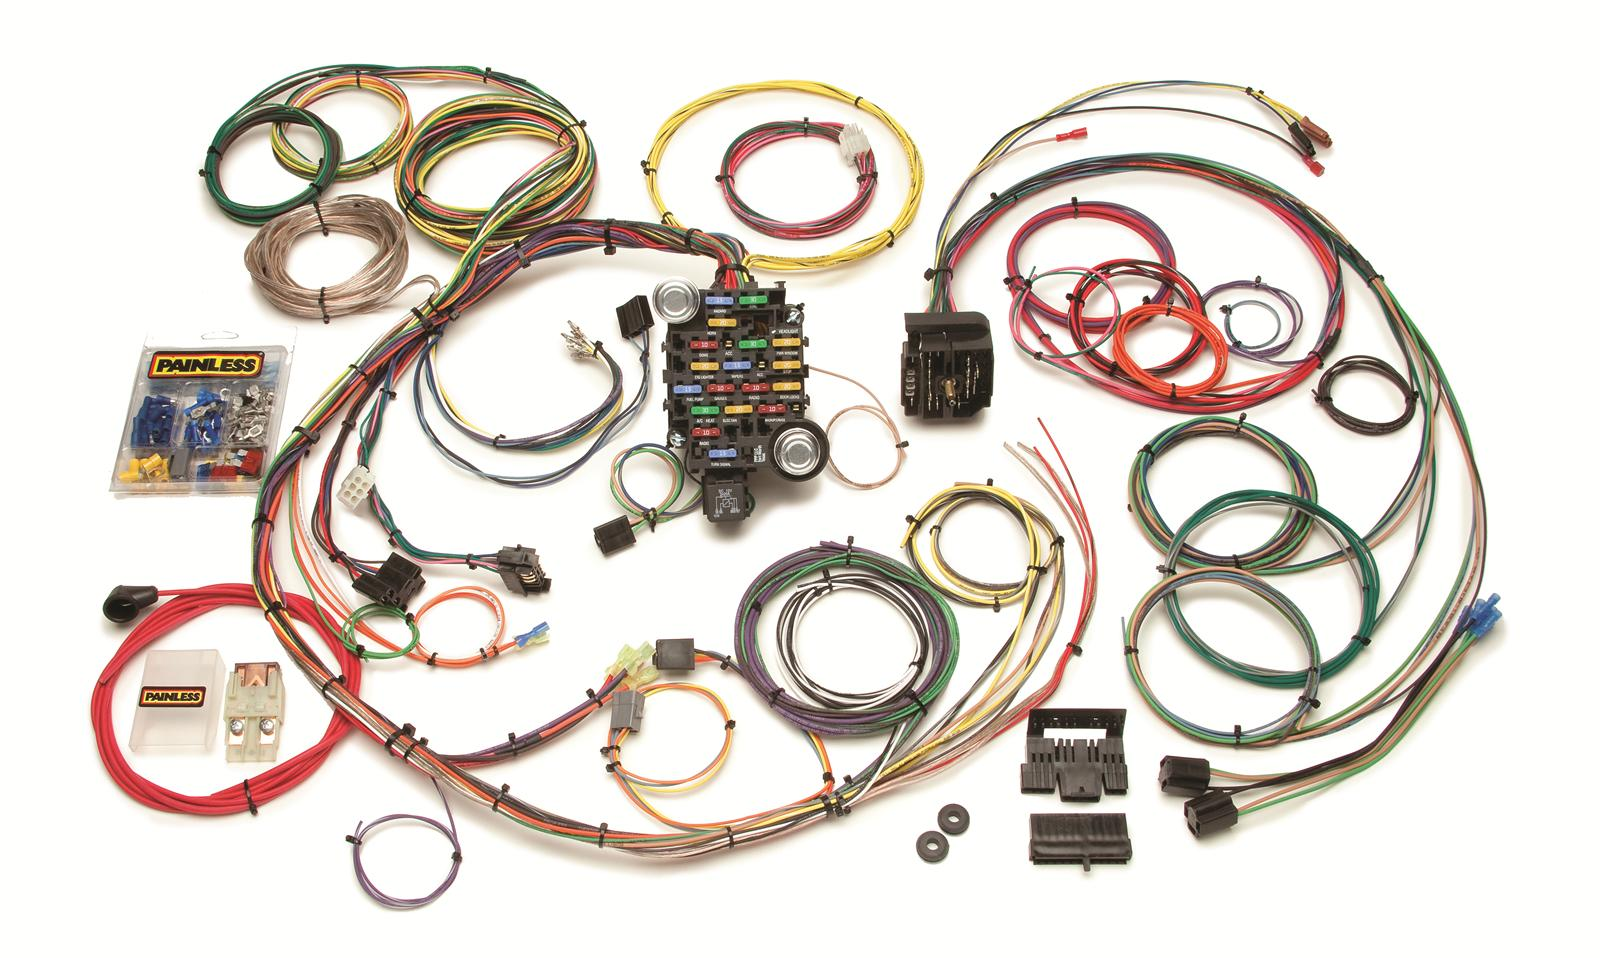 Painless Performance 24 Circuit 1967 68 Camaro And Firebird Wiring Kits Harnesses 20101 Free Shipping On Orders Over 99 At Summit Racing